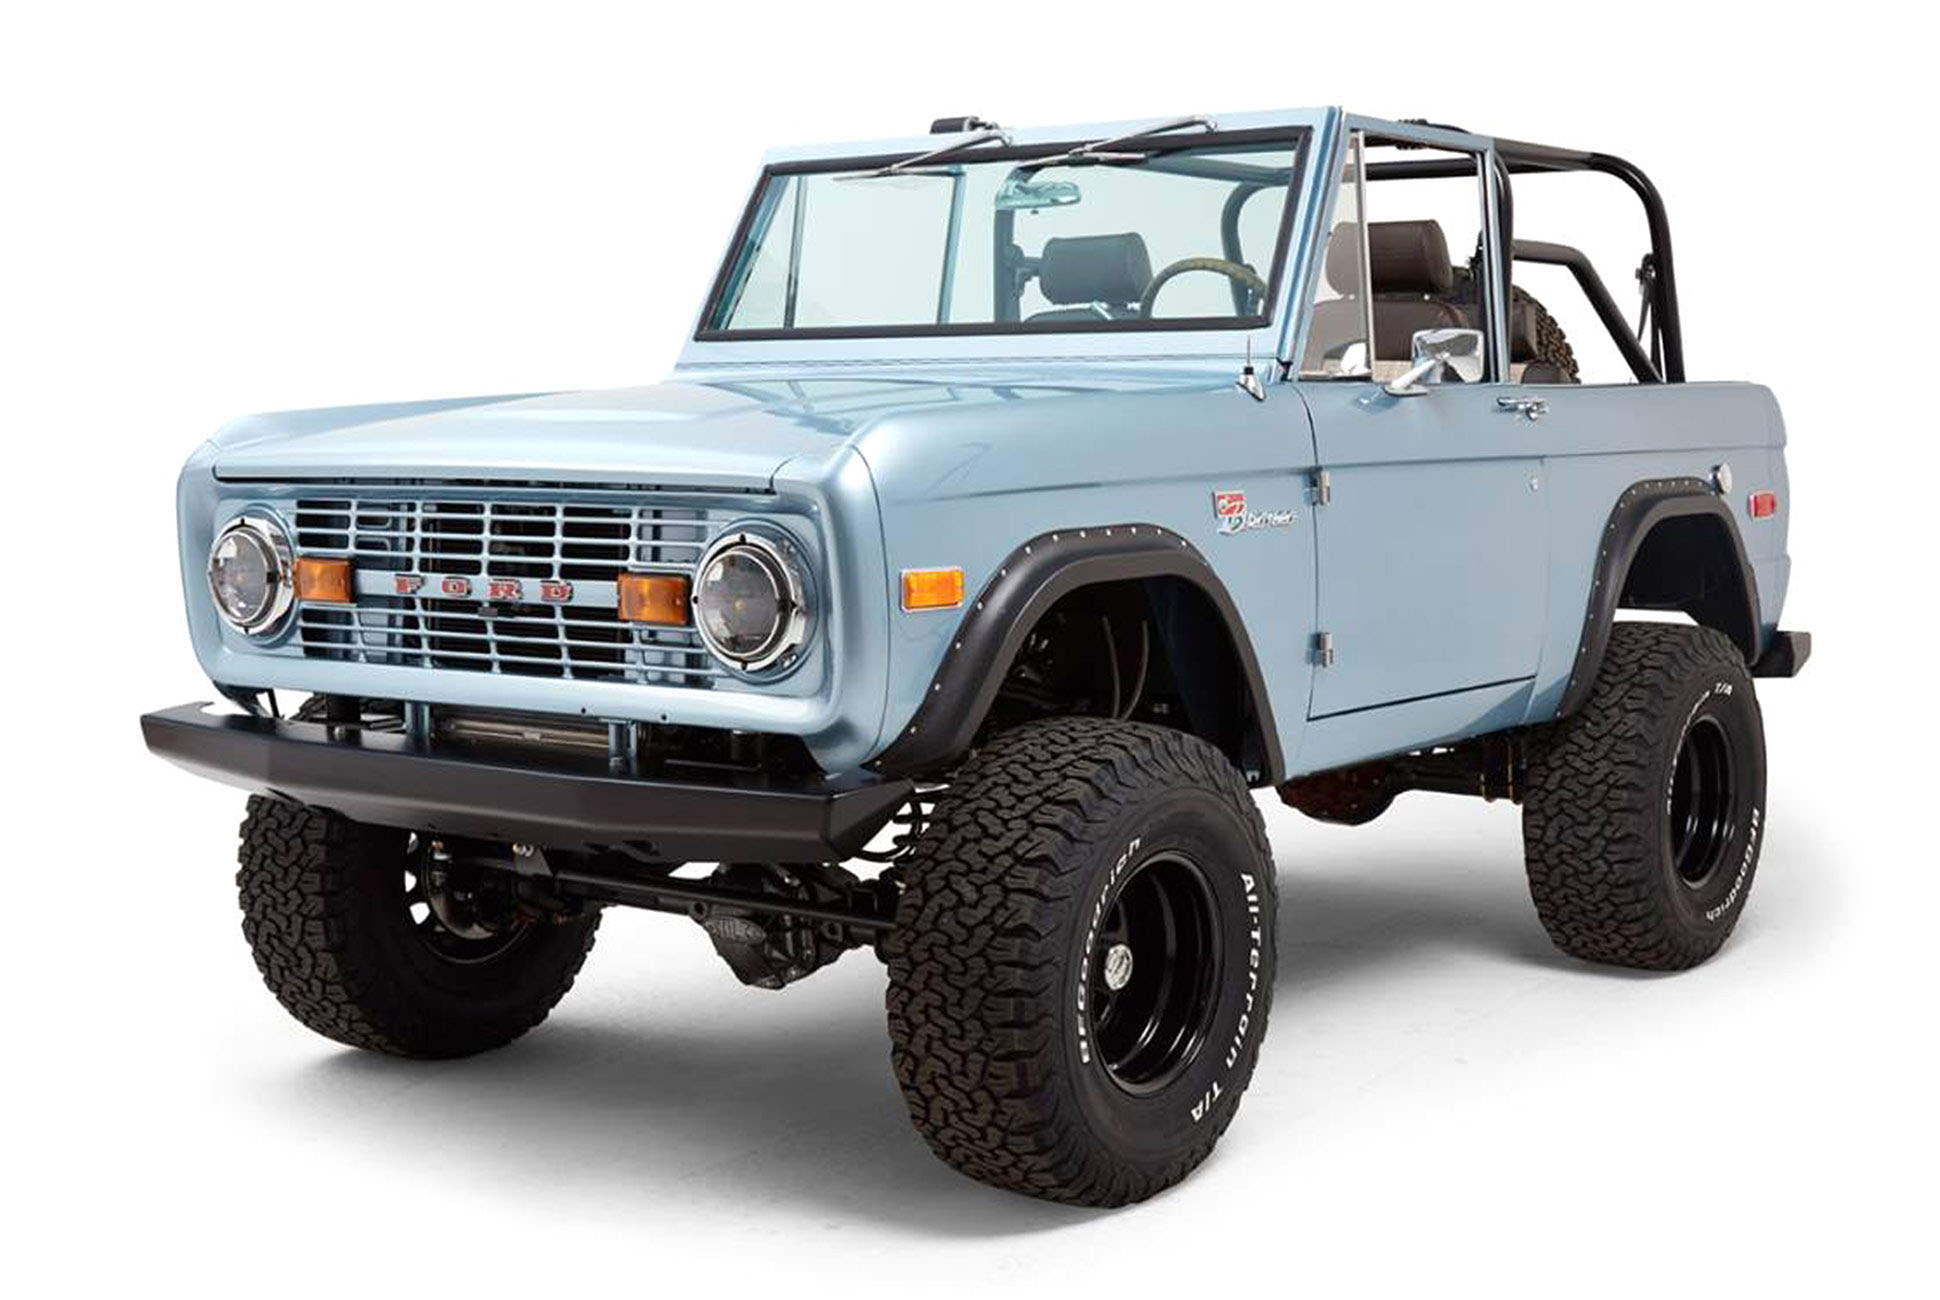 4-Wheel Classics/Classic Car, Truck, and SUV Sales